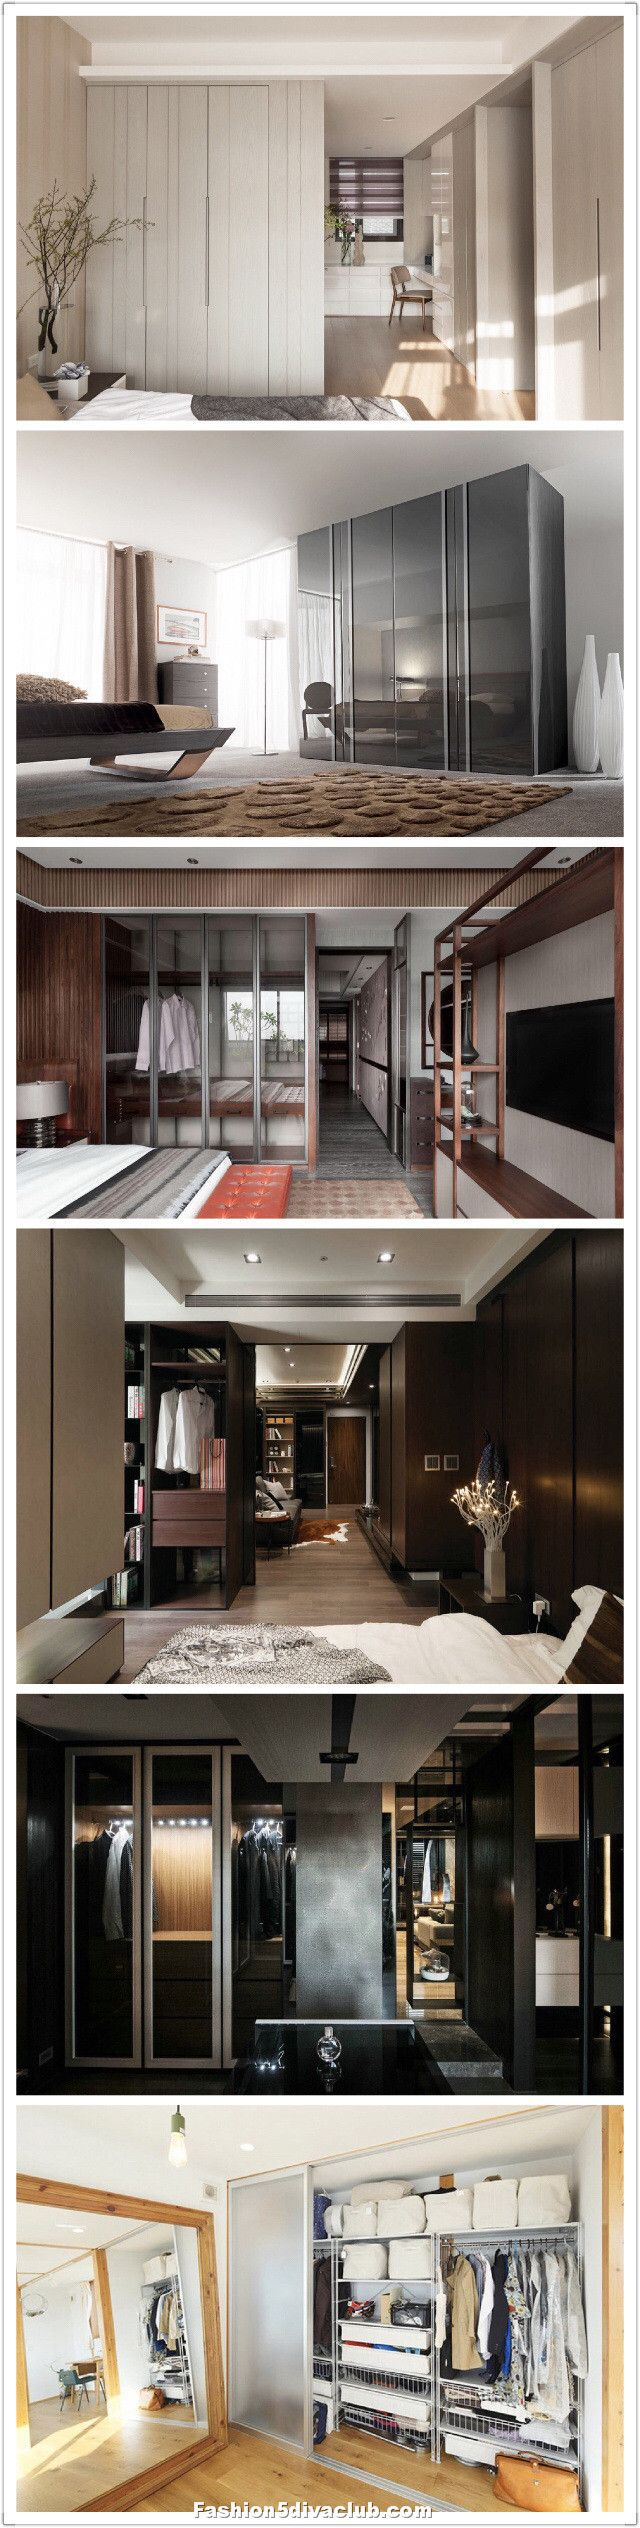 Check more wardrobe designs in fashion5divaclub.com, you will find designs for  wardrobe with sliding doors, wardrobe withe fliping doors and wardrobe with door